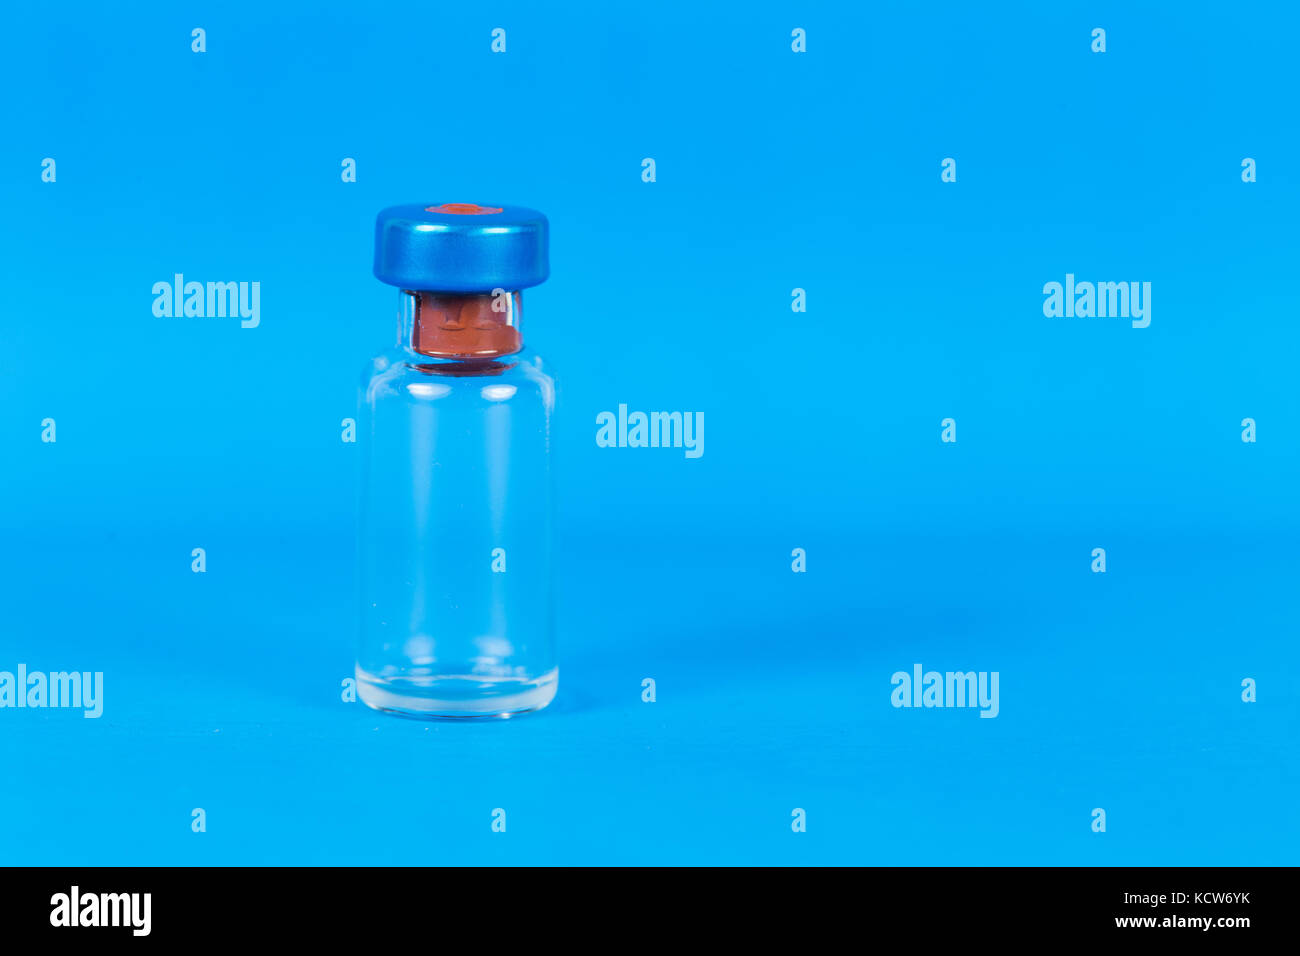 An empty vaccine vial taken in an isolated blue background - Stock Image